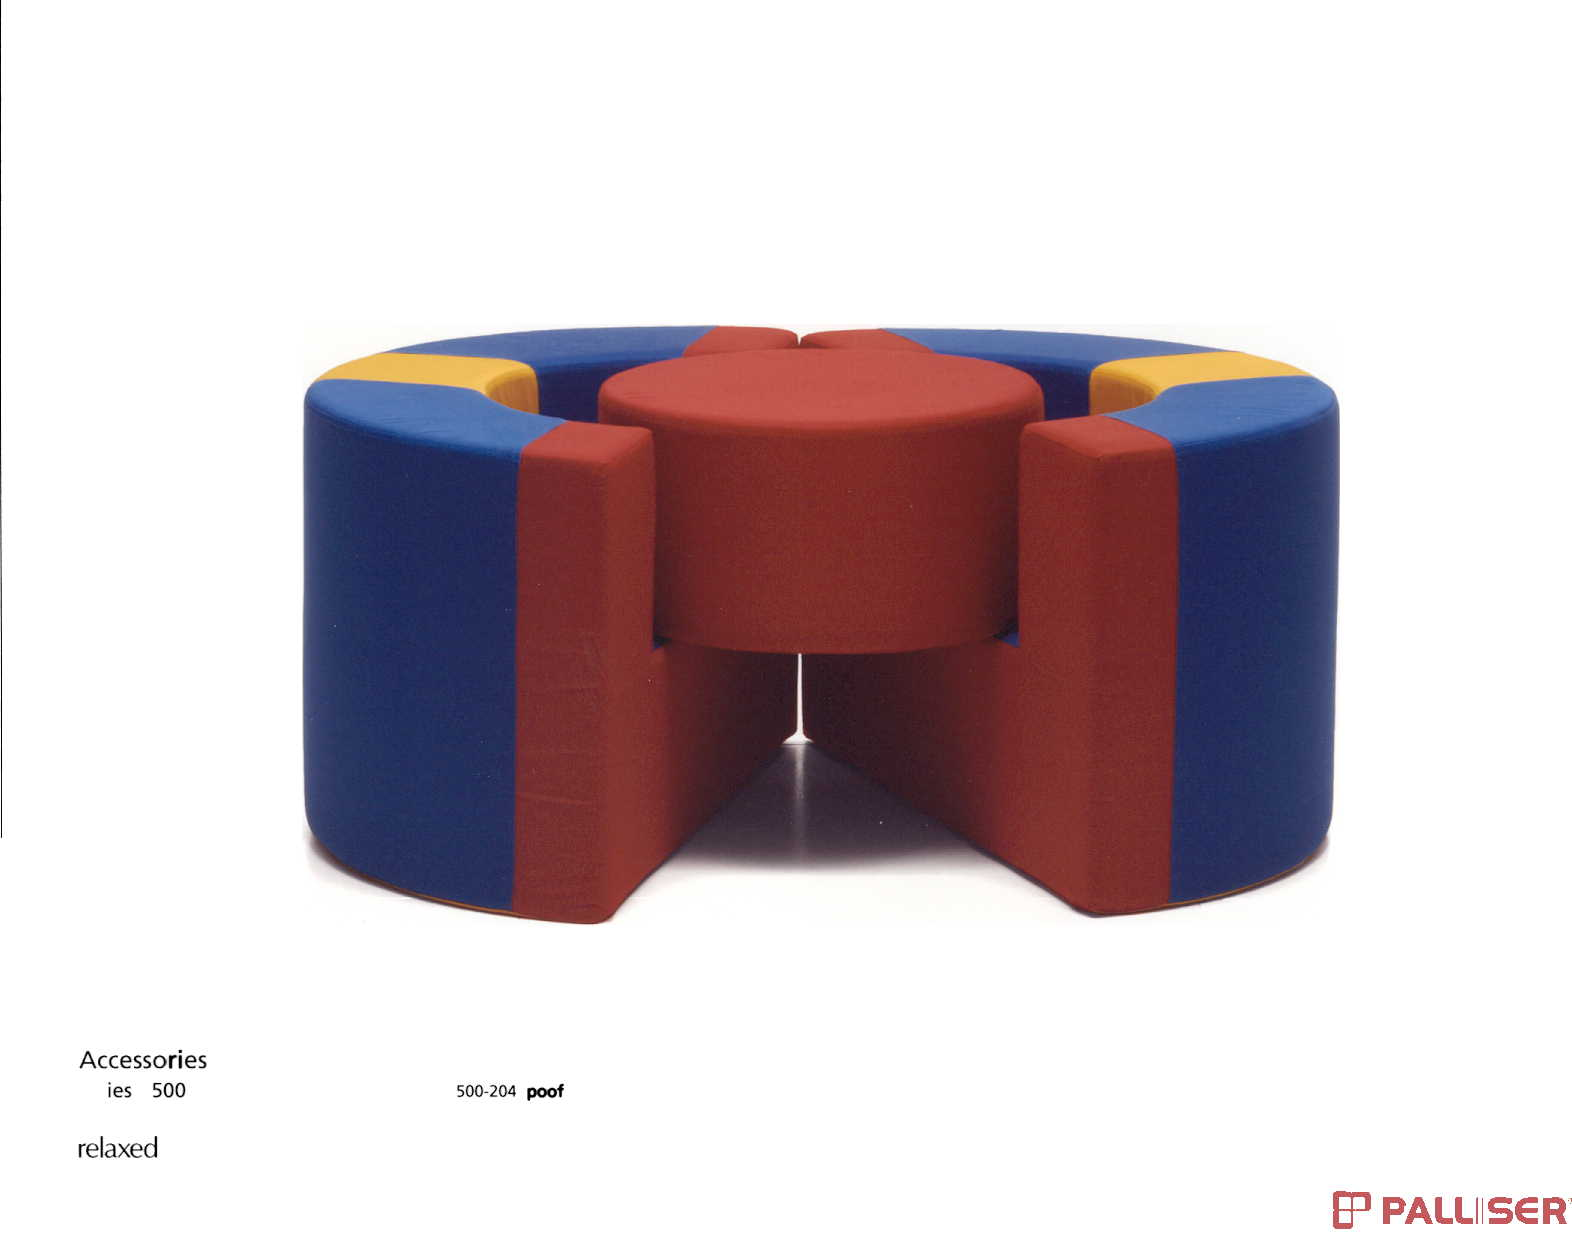 picture of recalled poof chair set